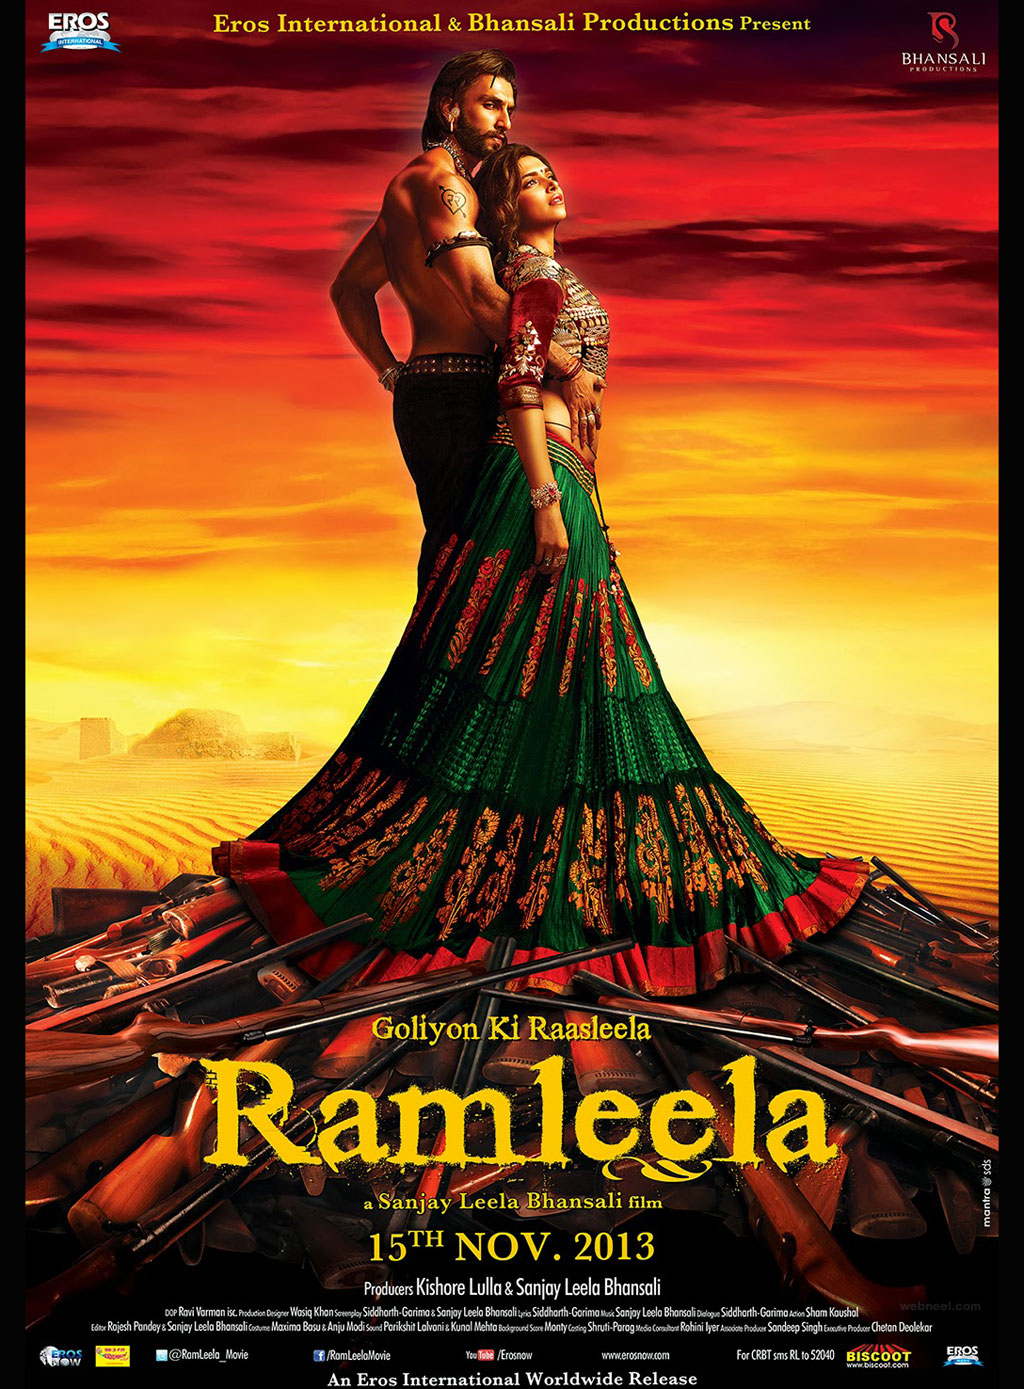 india movie poster design idea ramleela